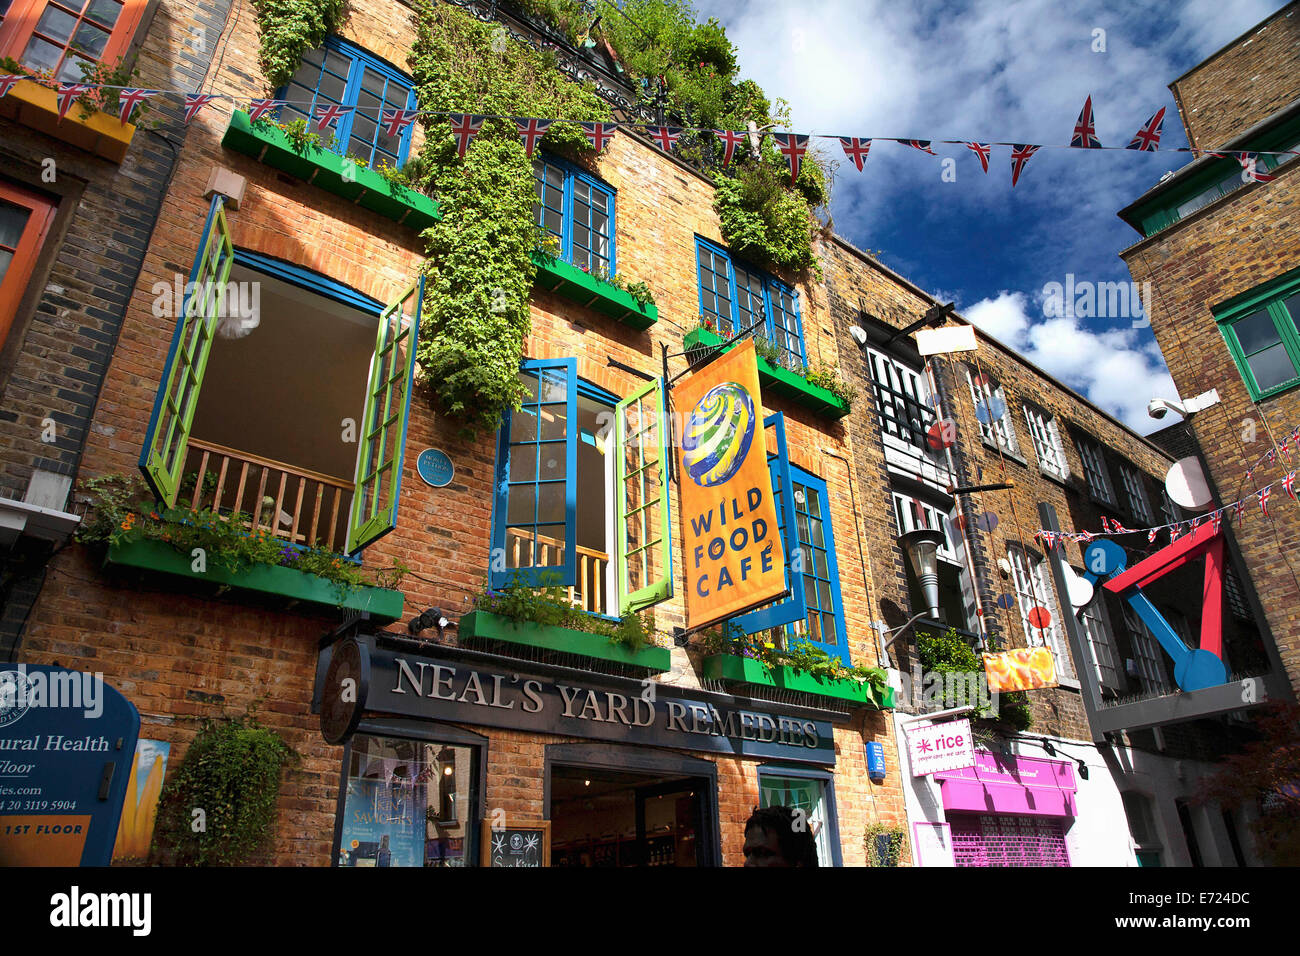 Neal S Yard Covent Garden Cafe